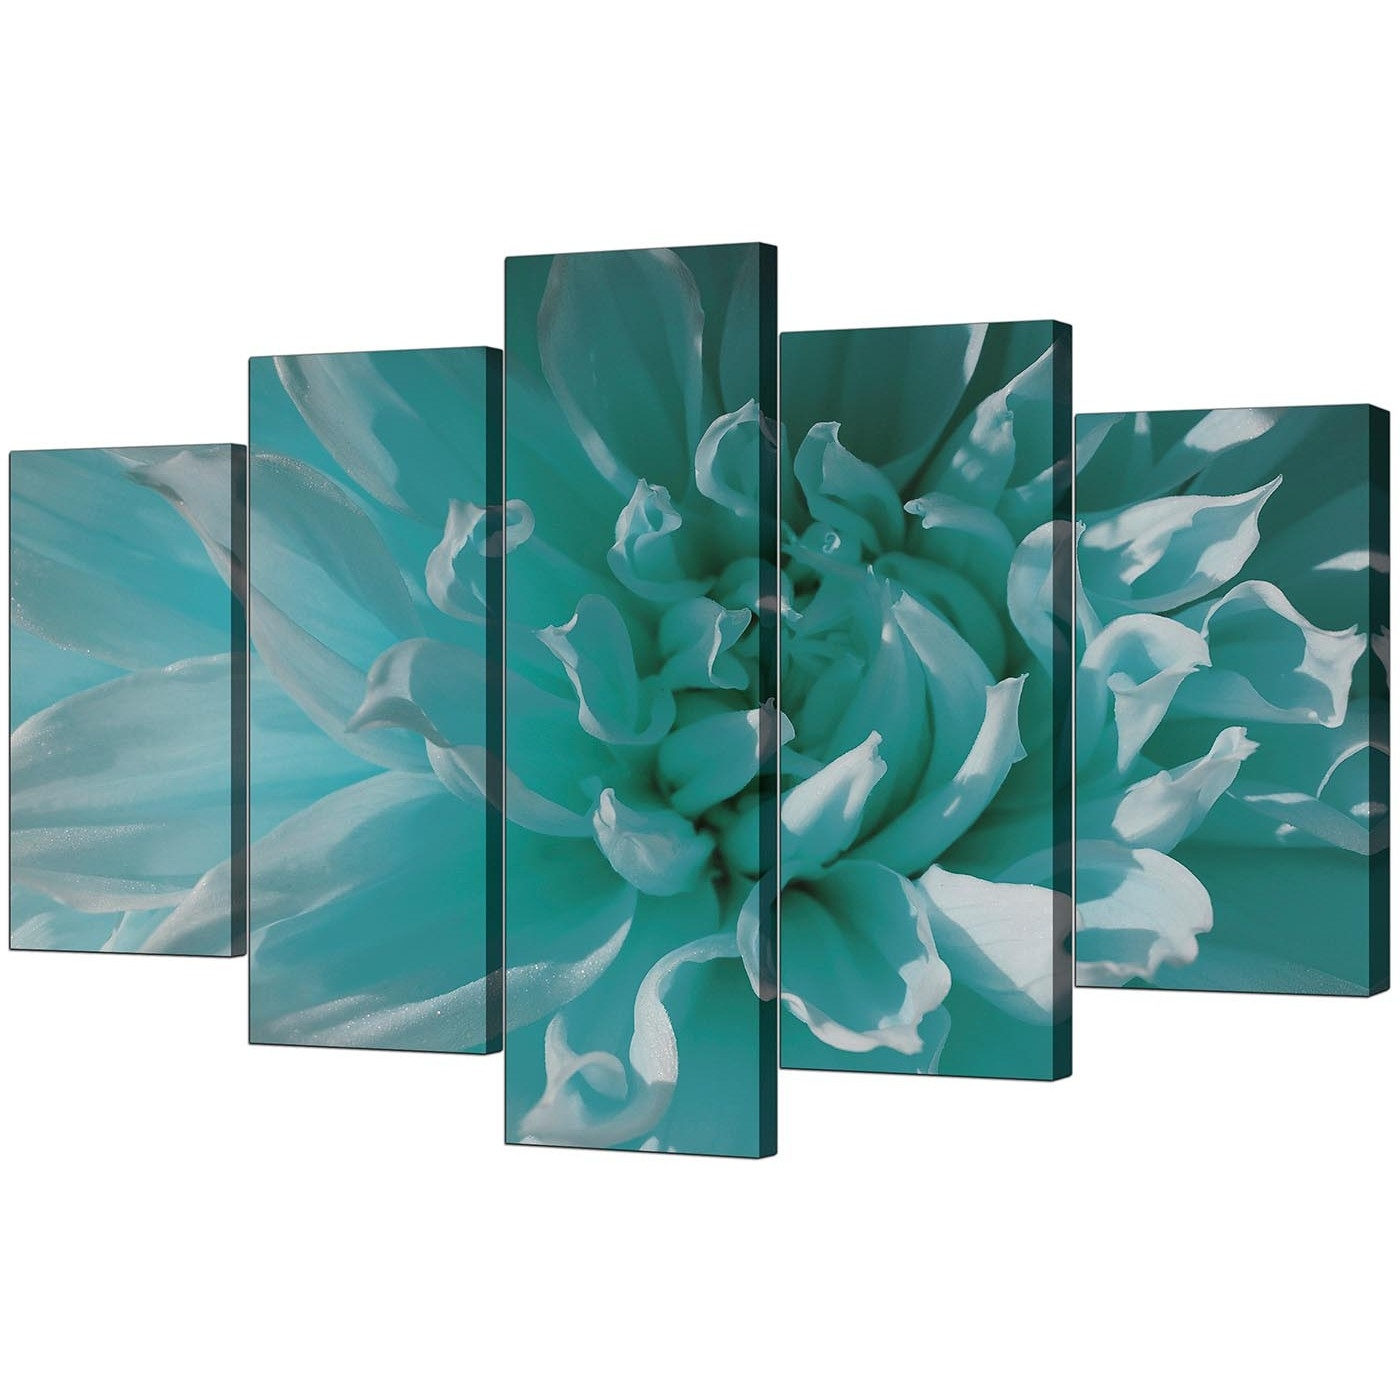 2017 Teal Flower Canvas Wall Art For Extra Large Flower Canvas Wall Art 5 Piece In Teal (View 1 of 15)